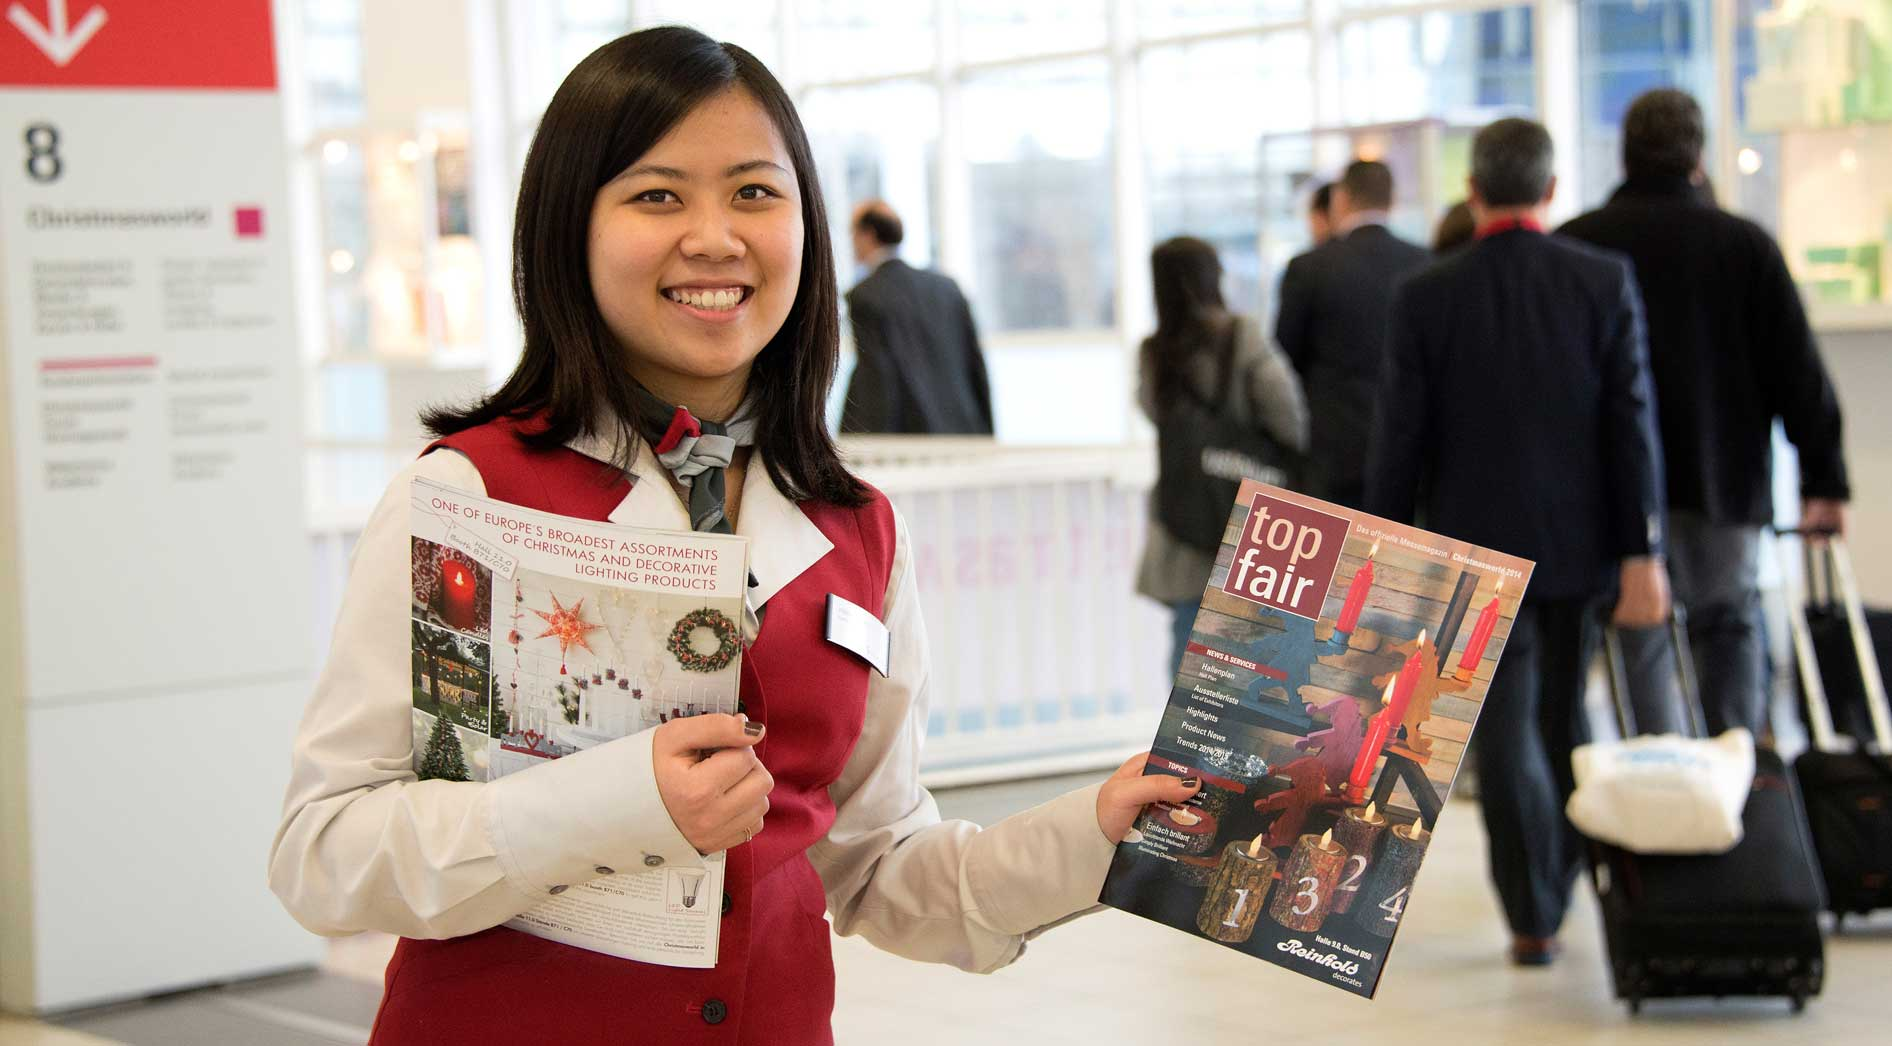 Trade fair magazines and newspapers